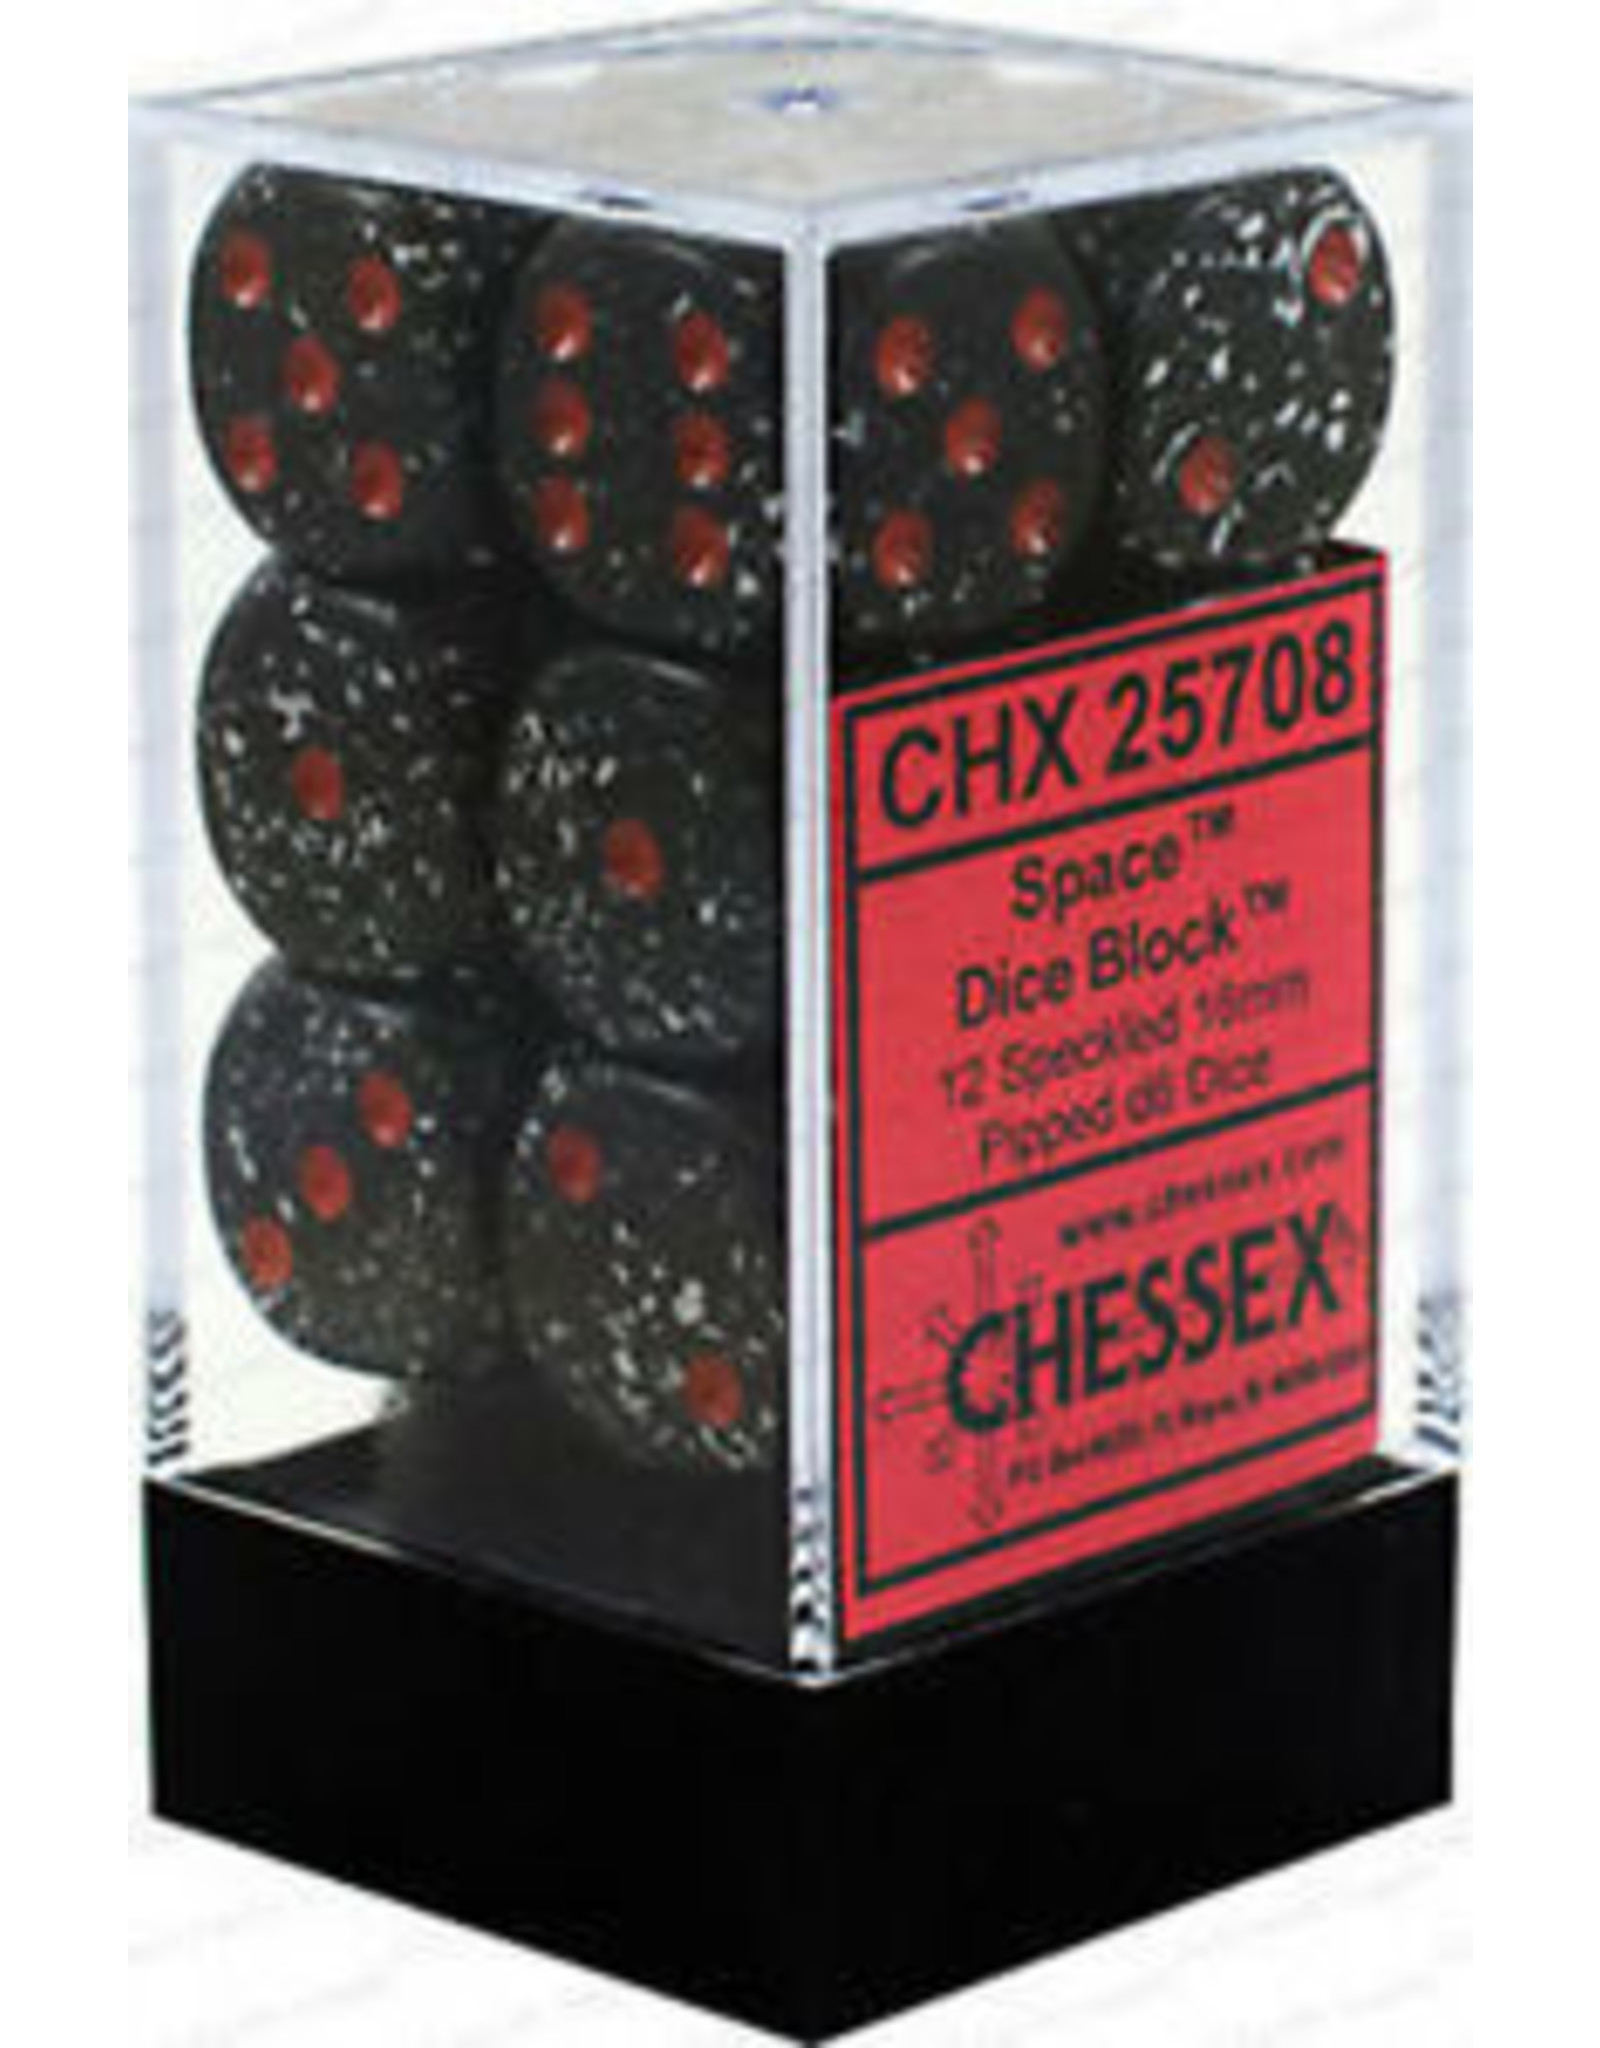 Chessex Space D6